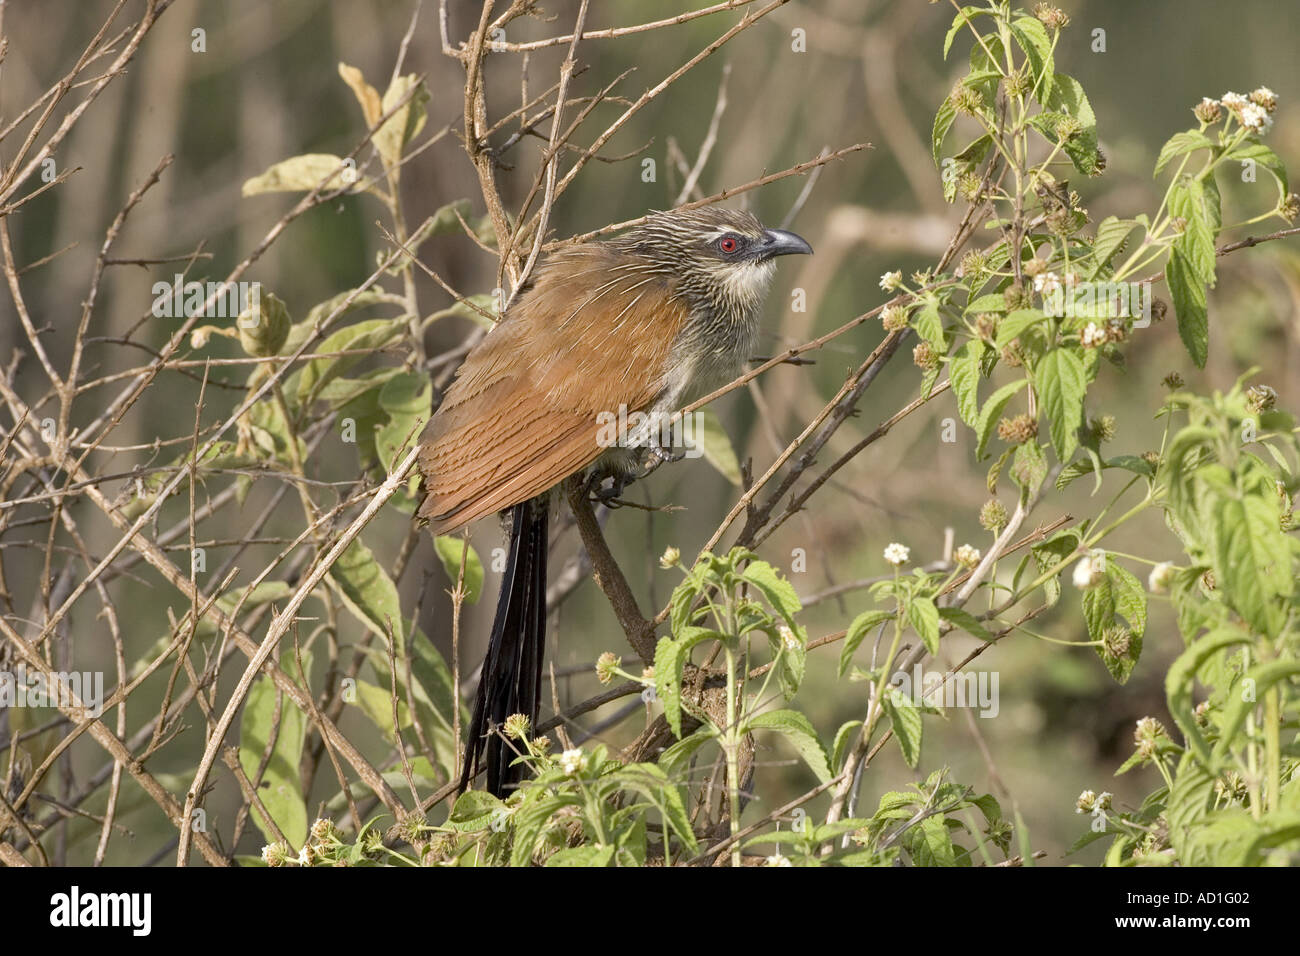 White browed Coucal Ngorongoro Crater Tanzania Centropus supercillosus - Stock Image